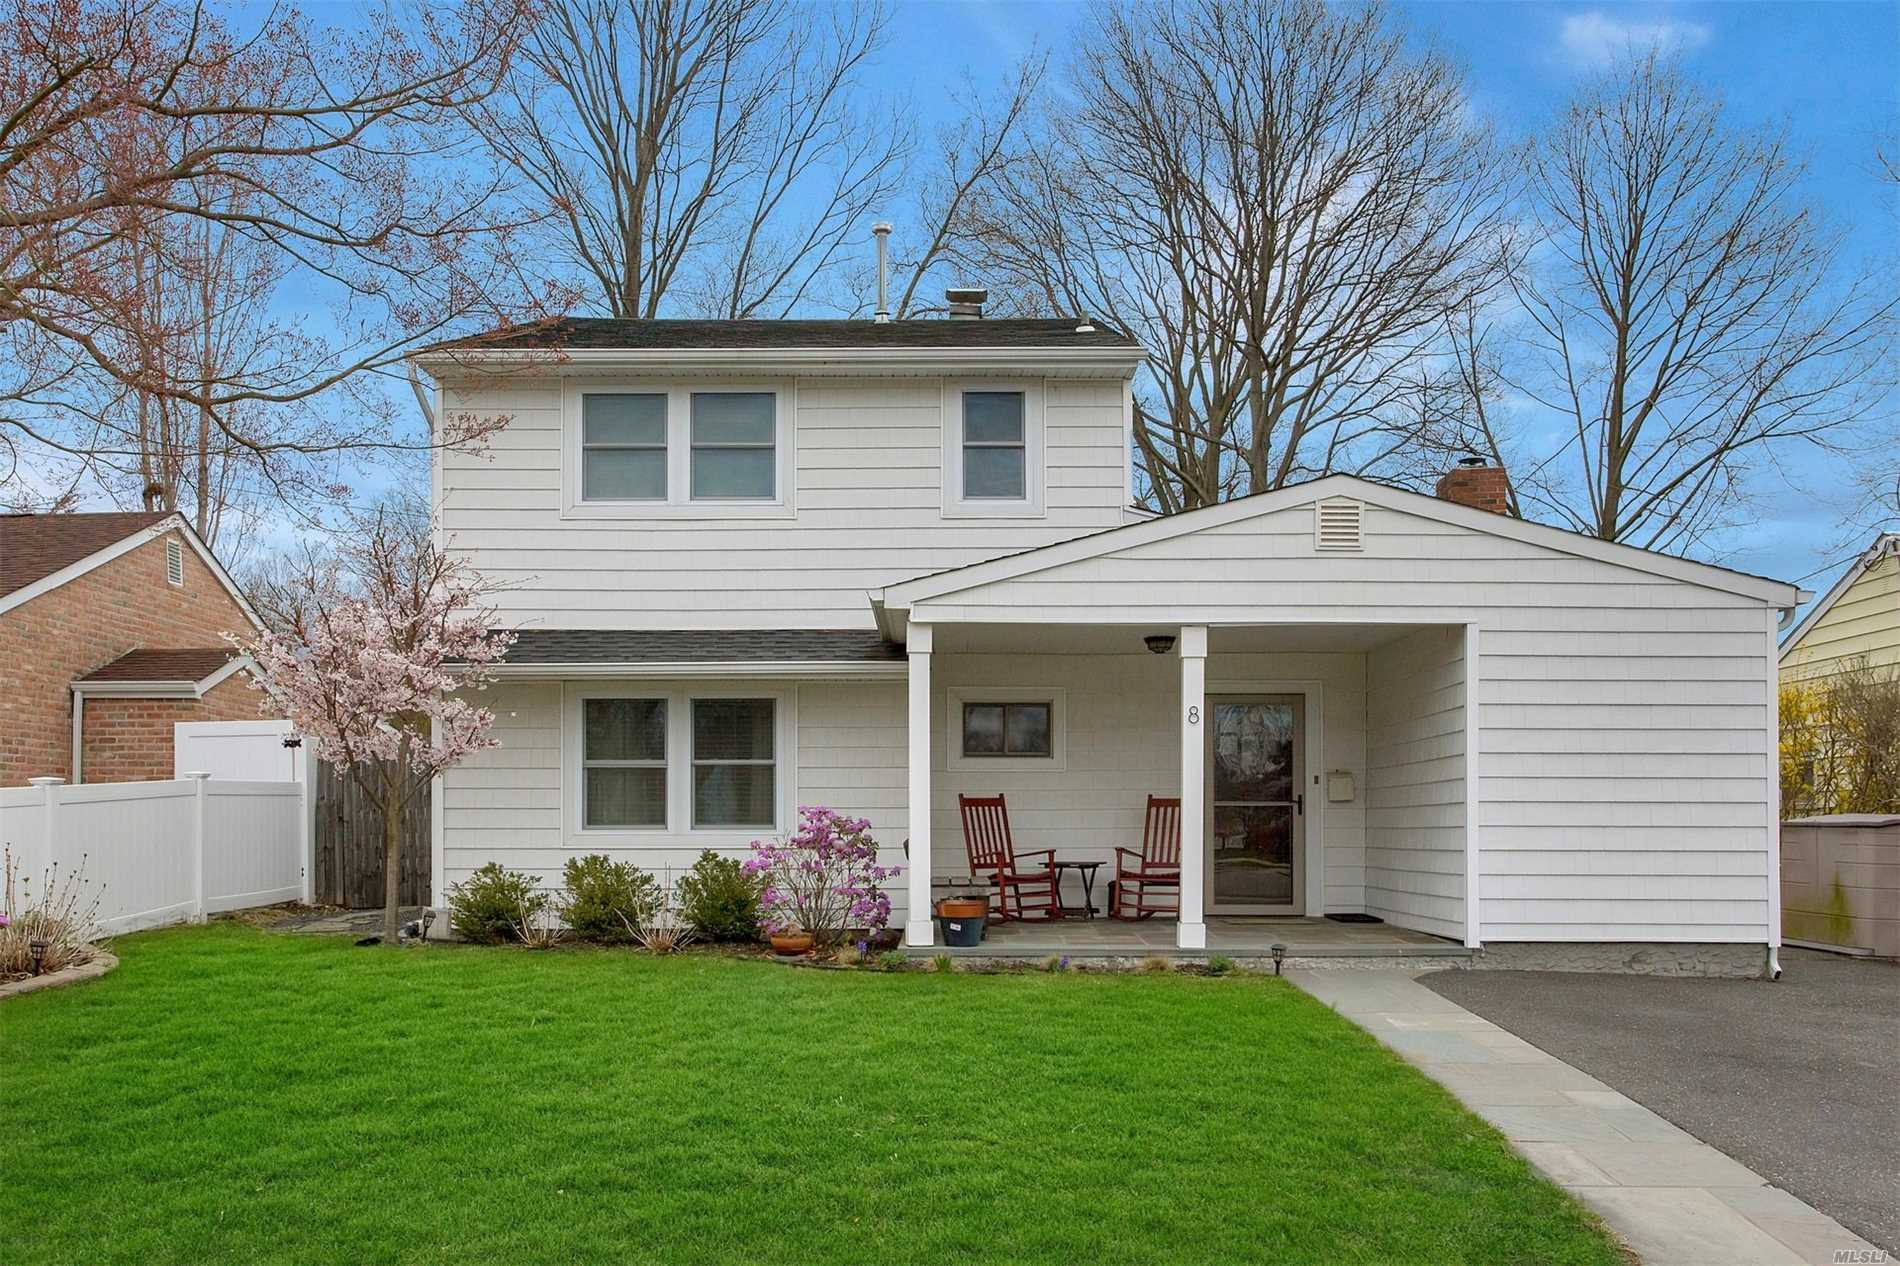 A Newly Renovated 4 Bedroom Cape, Featuring A Living Room With Fireplace, Dining Area, Granite Kitchen, 2 Full Updated Baths, Laundry, Plenty Of Closets, Private Back Yard For Entertaining And Alarmed, A Must See. Welcome Home!